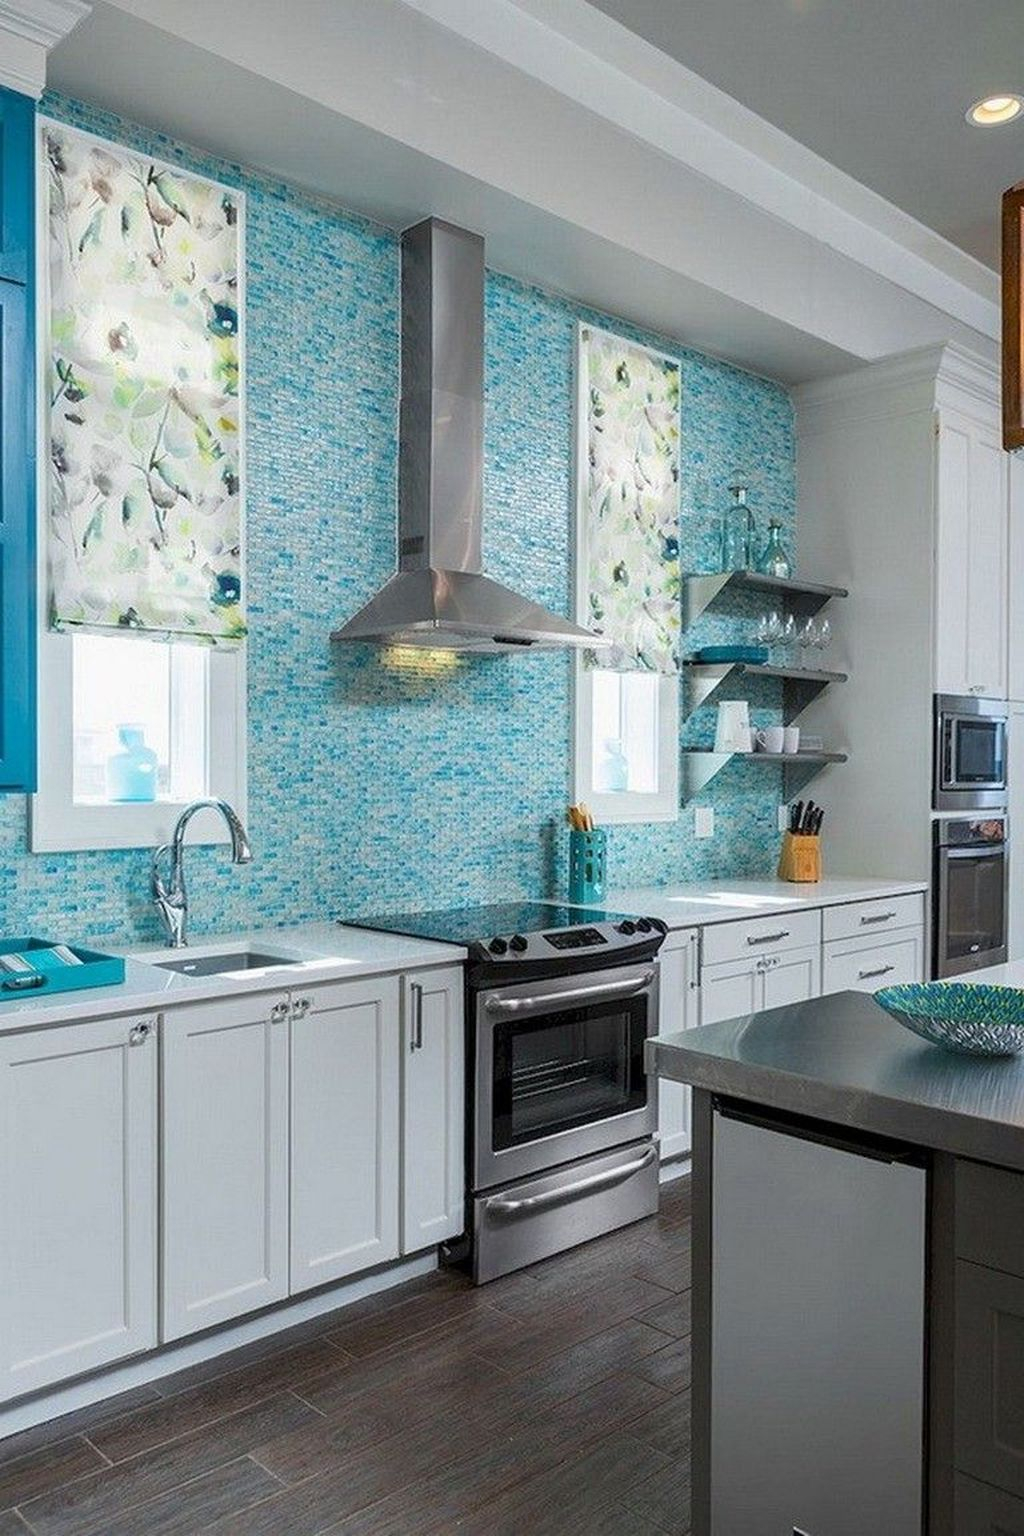 Awesome Backsplash Kitchen Wall Ideas That Every People Want It 33